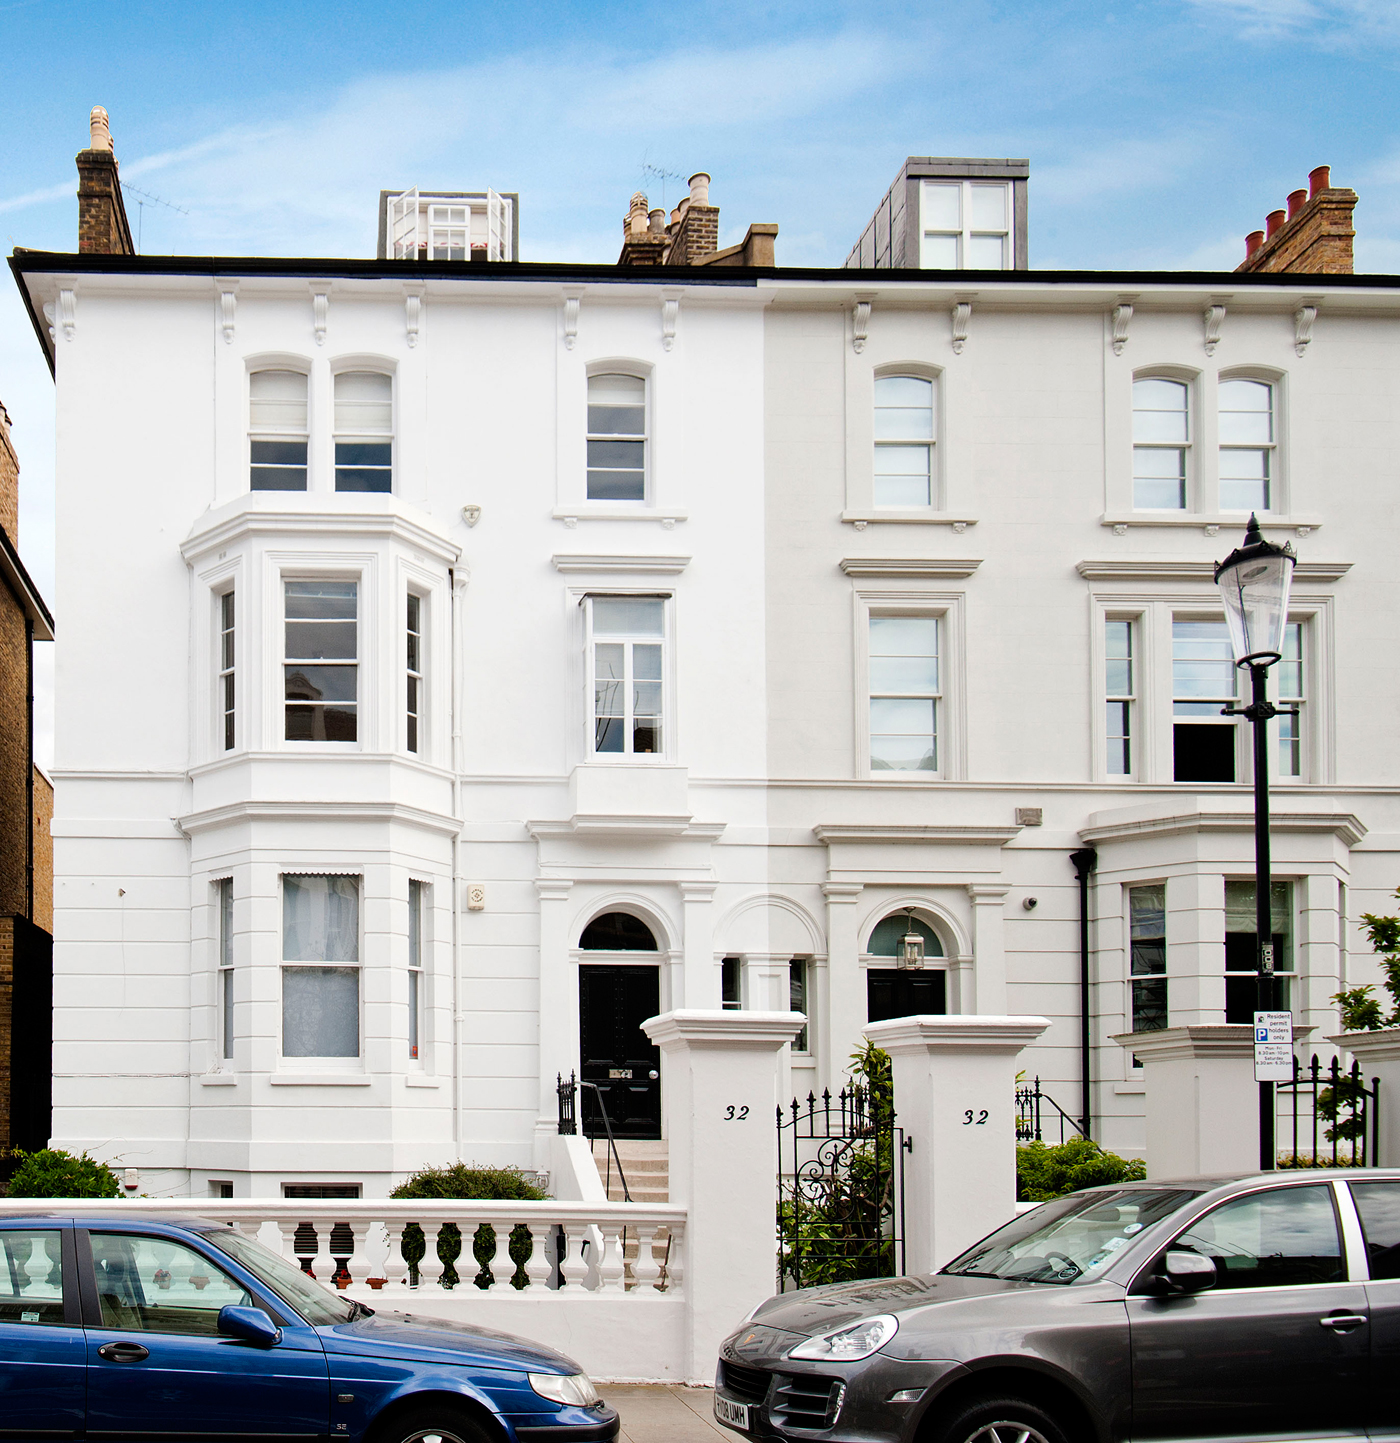 London's Luxury Market Home Prices Up As Much As 10% In